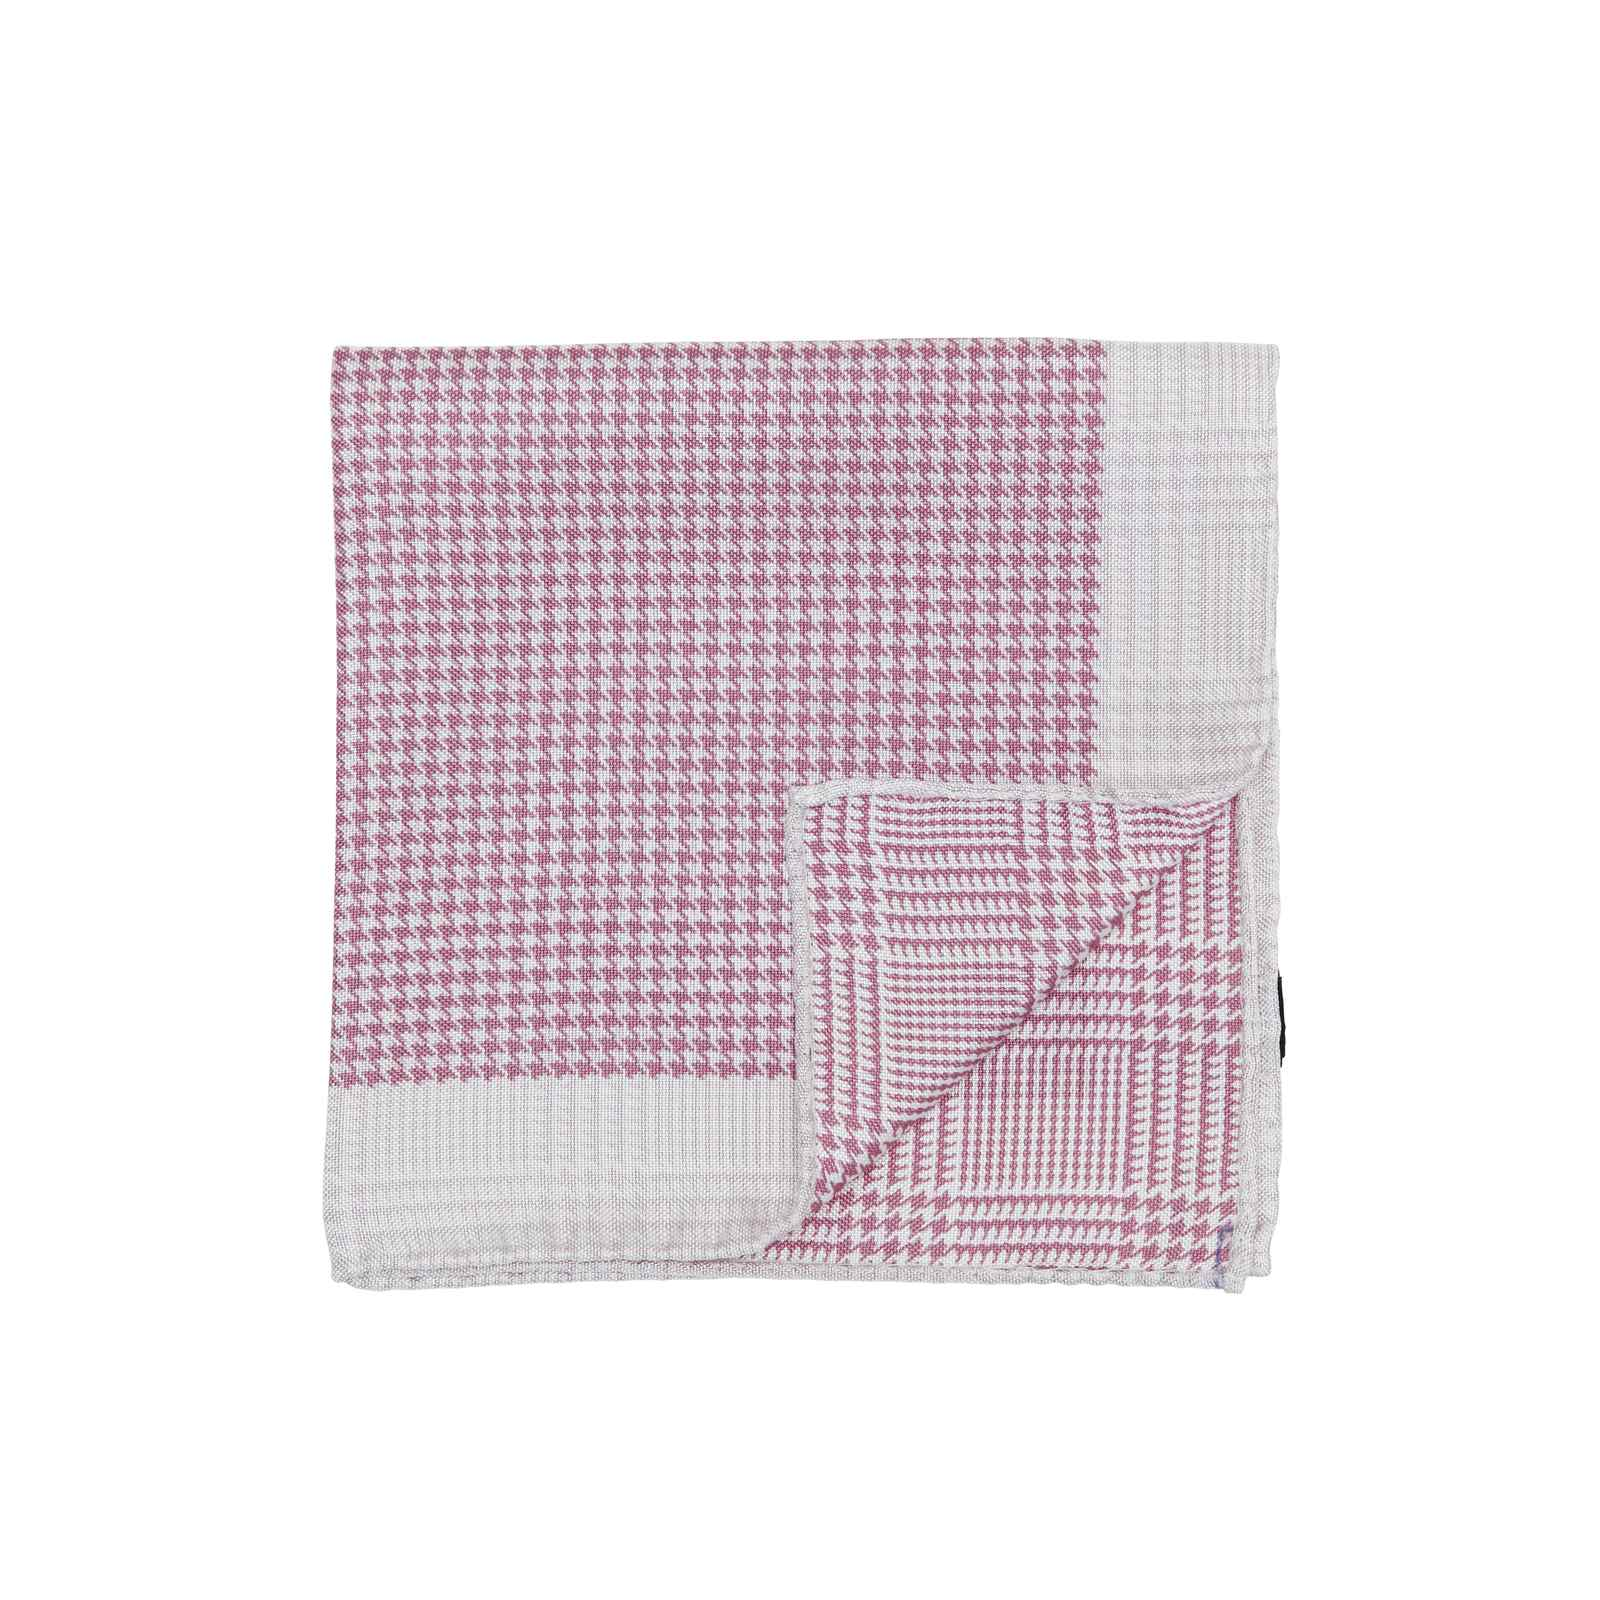 Pink Double Sided Houndstooth and Glencheck Pocket Square